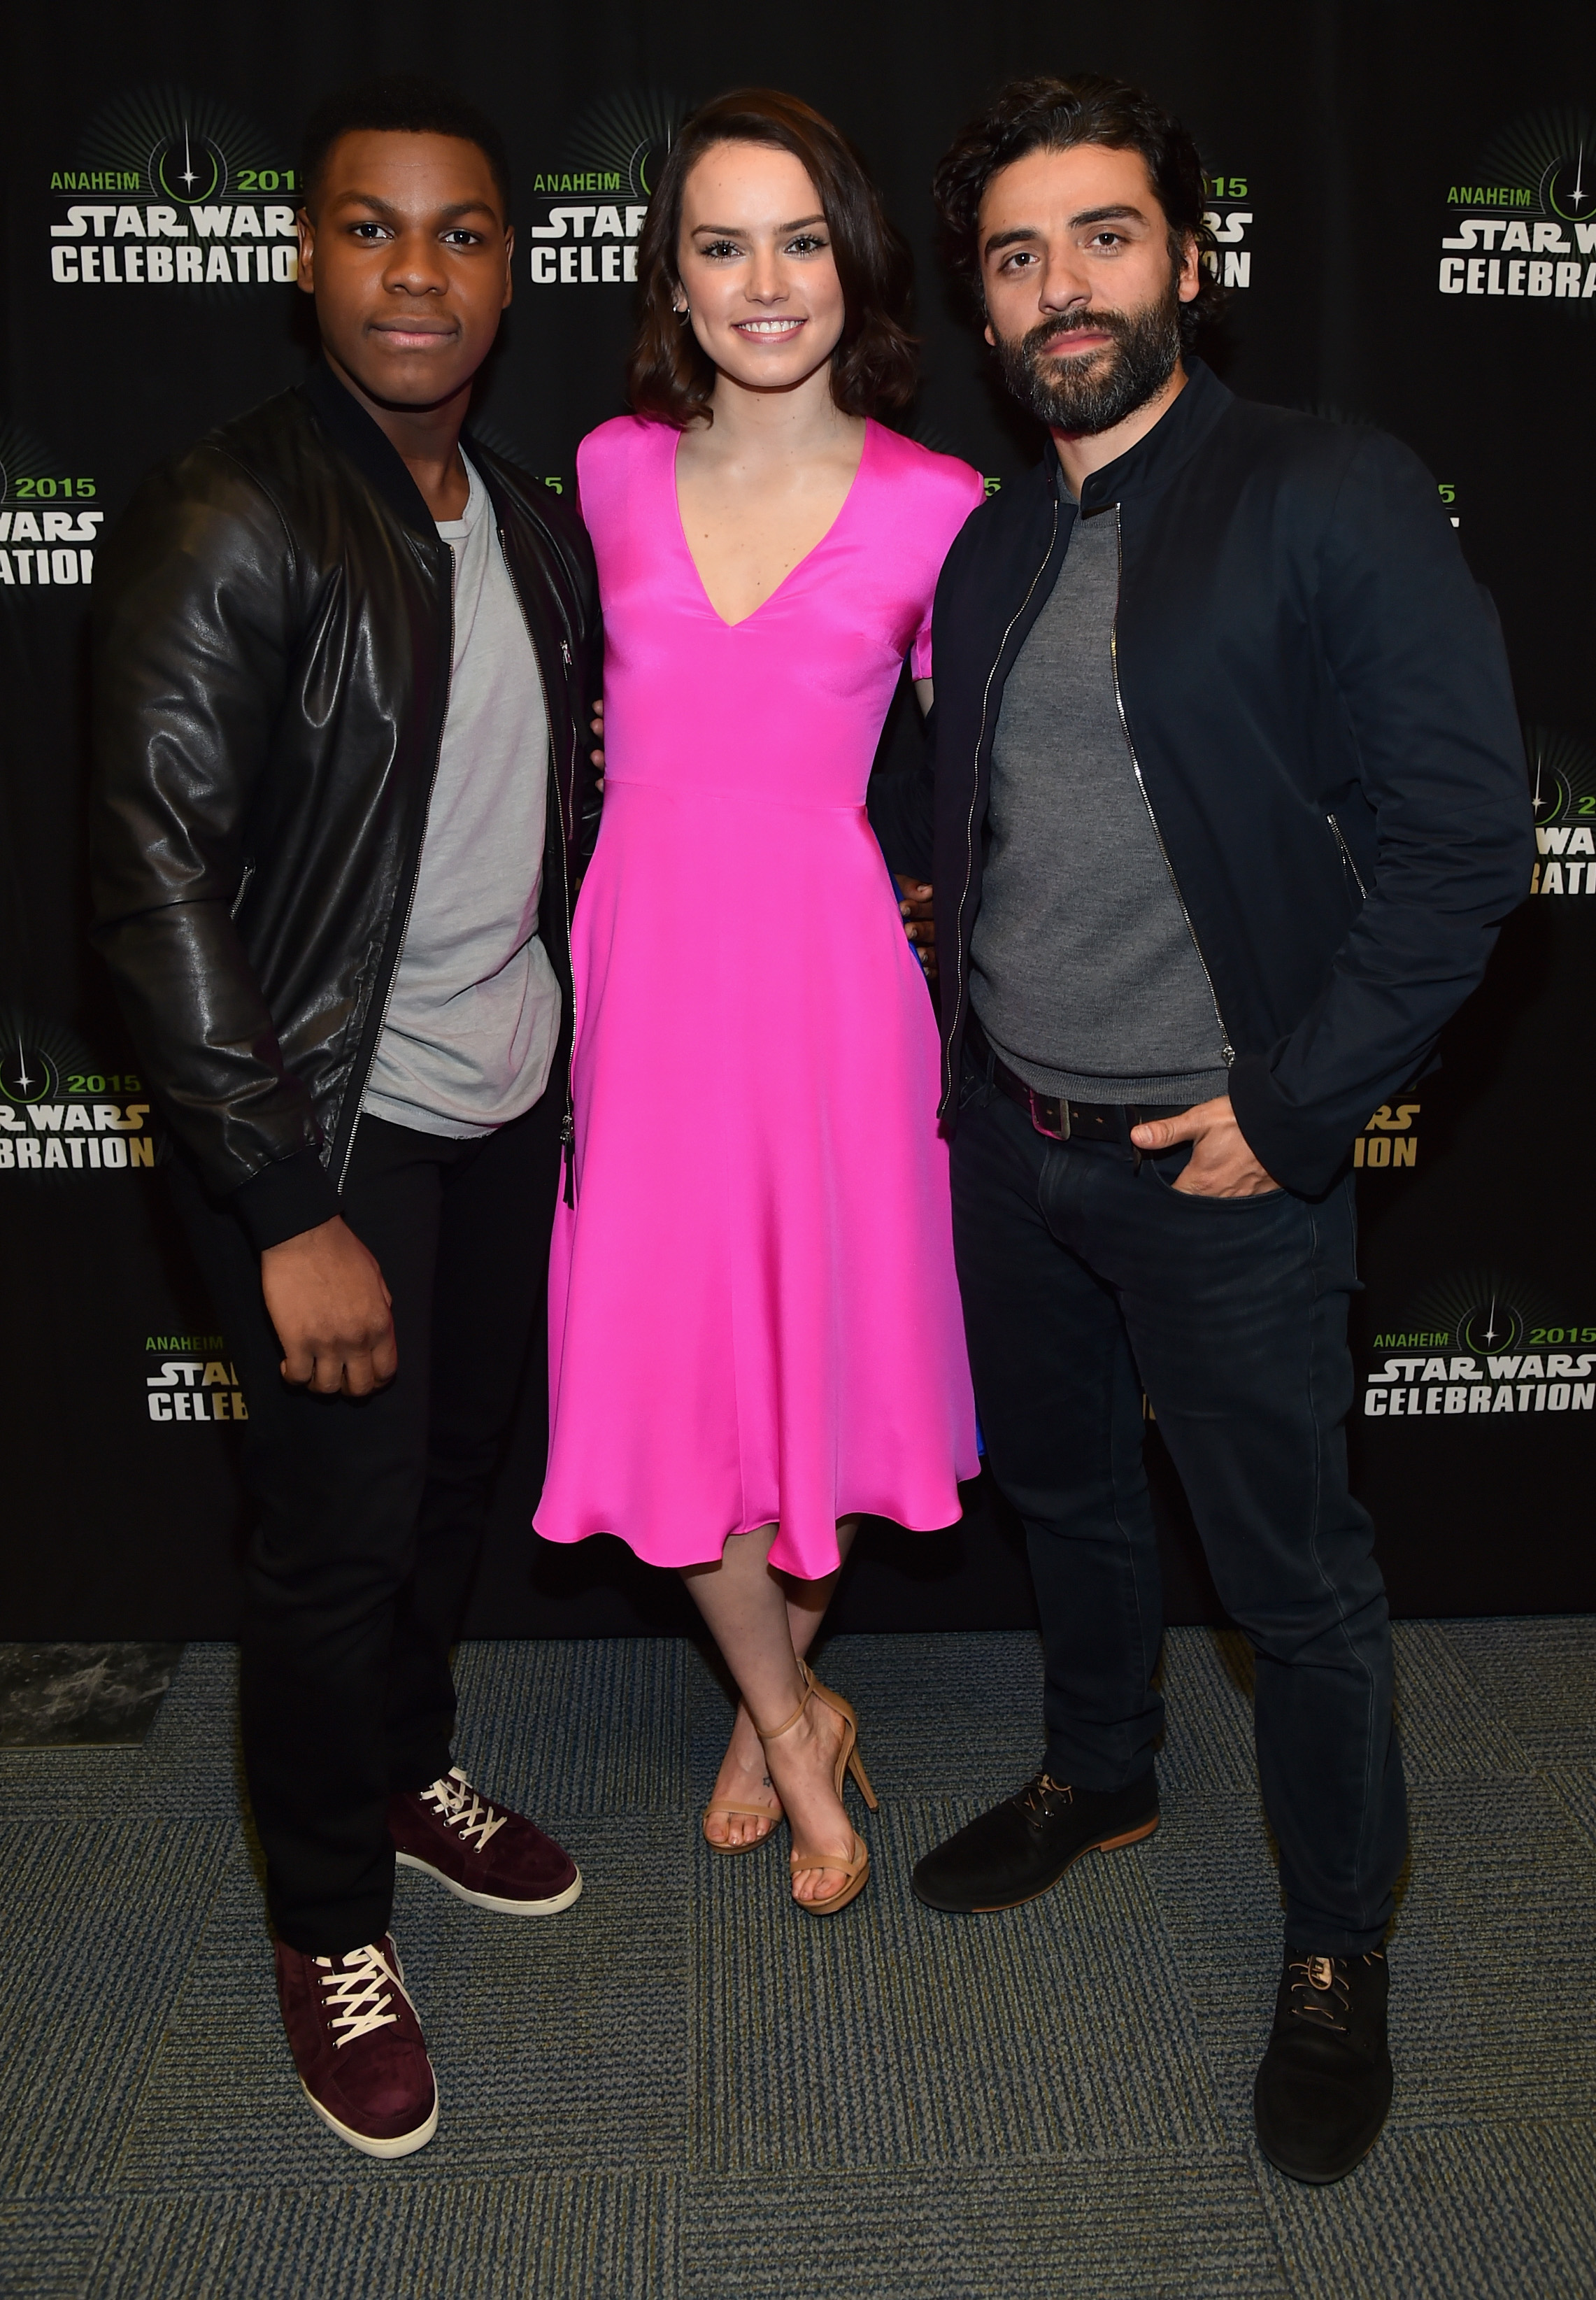 Oscar Isaac, daisy Ridley and John Boyega at The bintang Wars Celebration